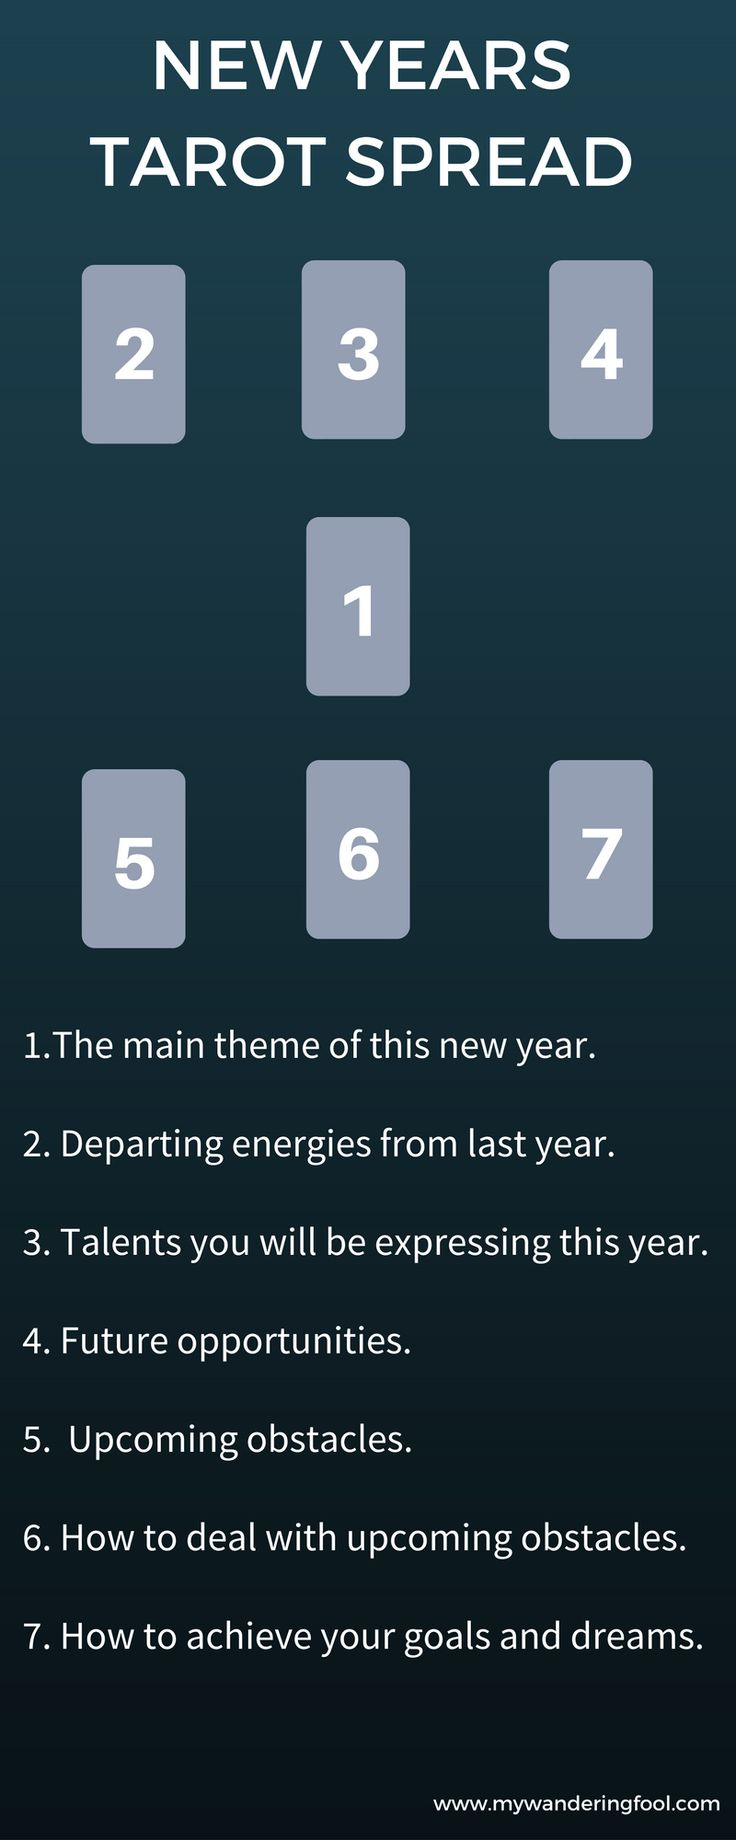 New Year's Tarot Spread - Great for Planning and Goal Setting!